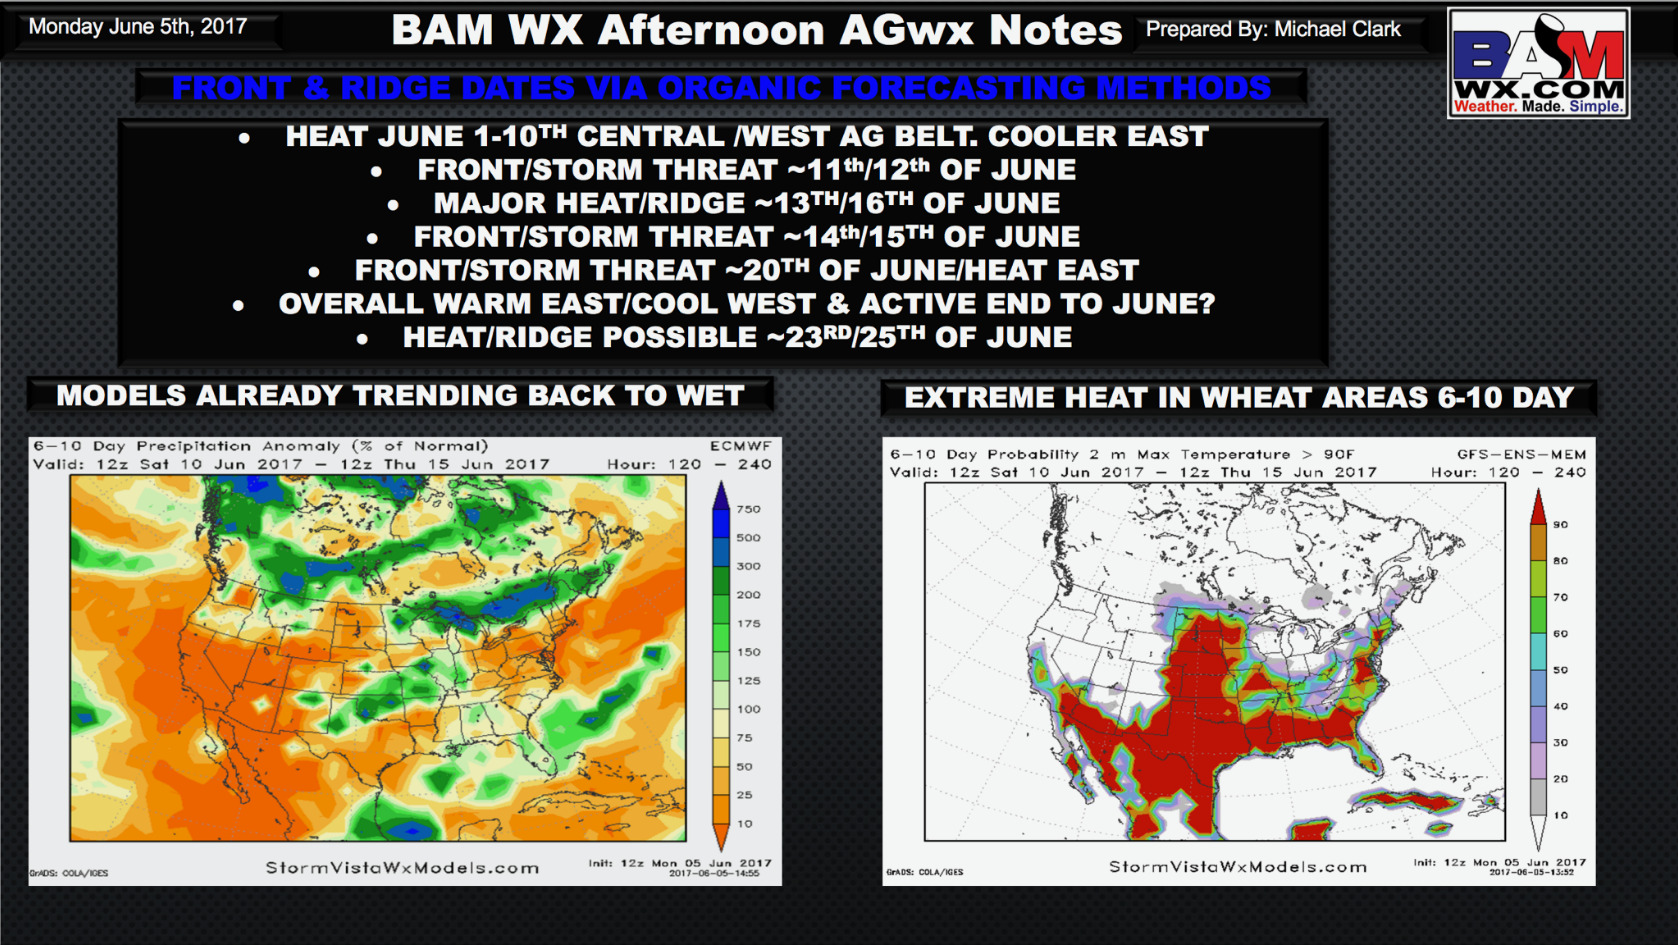 Monday PM #AGwx Report: Latest details on the growing season forecast ahead.